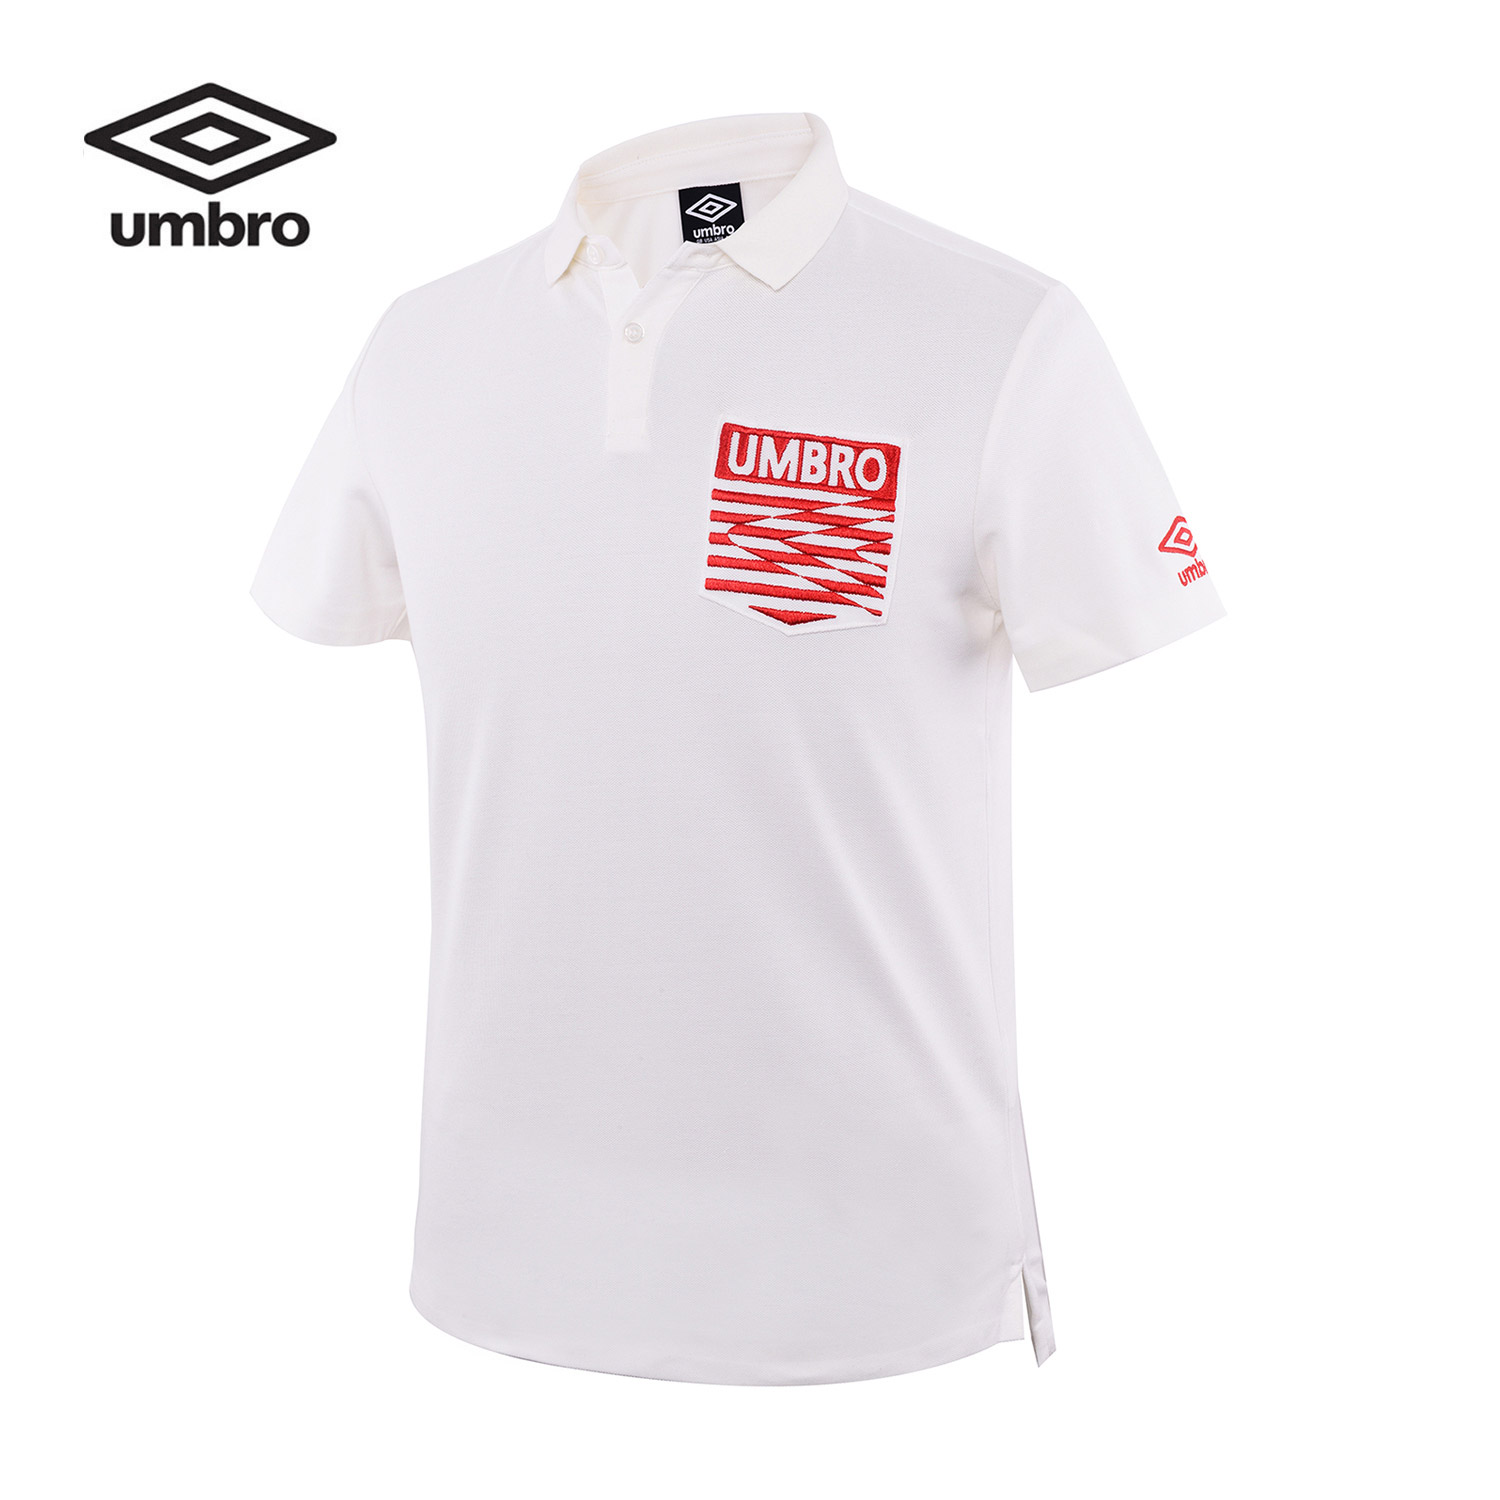 Umbro Men New Short Sleeve Polo Shirt Sports T-shirt Sportswear Tracksuit T-shirt Tee Tops UCC63105